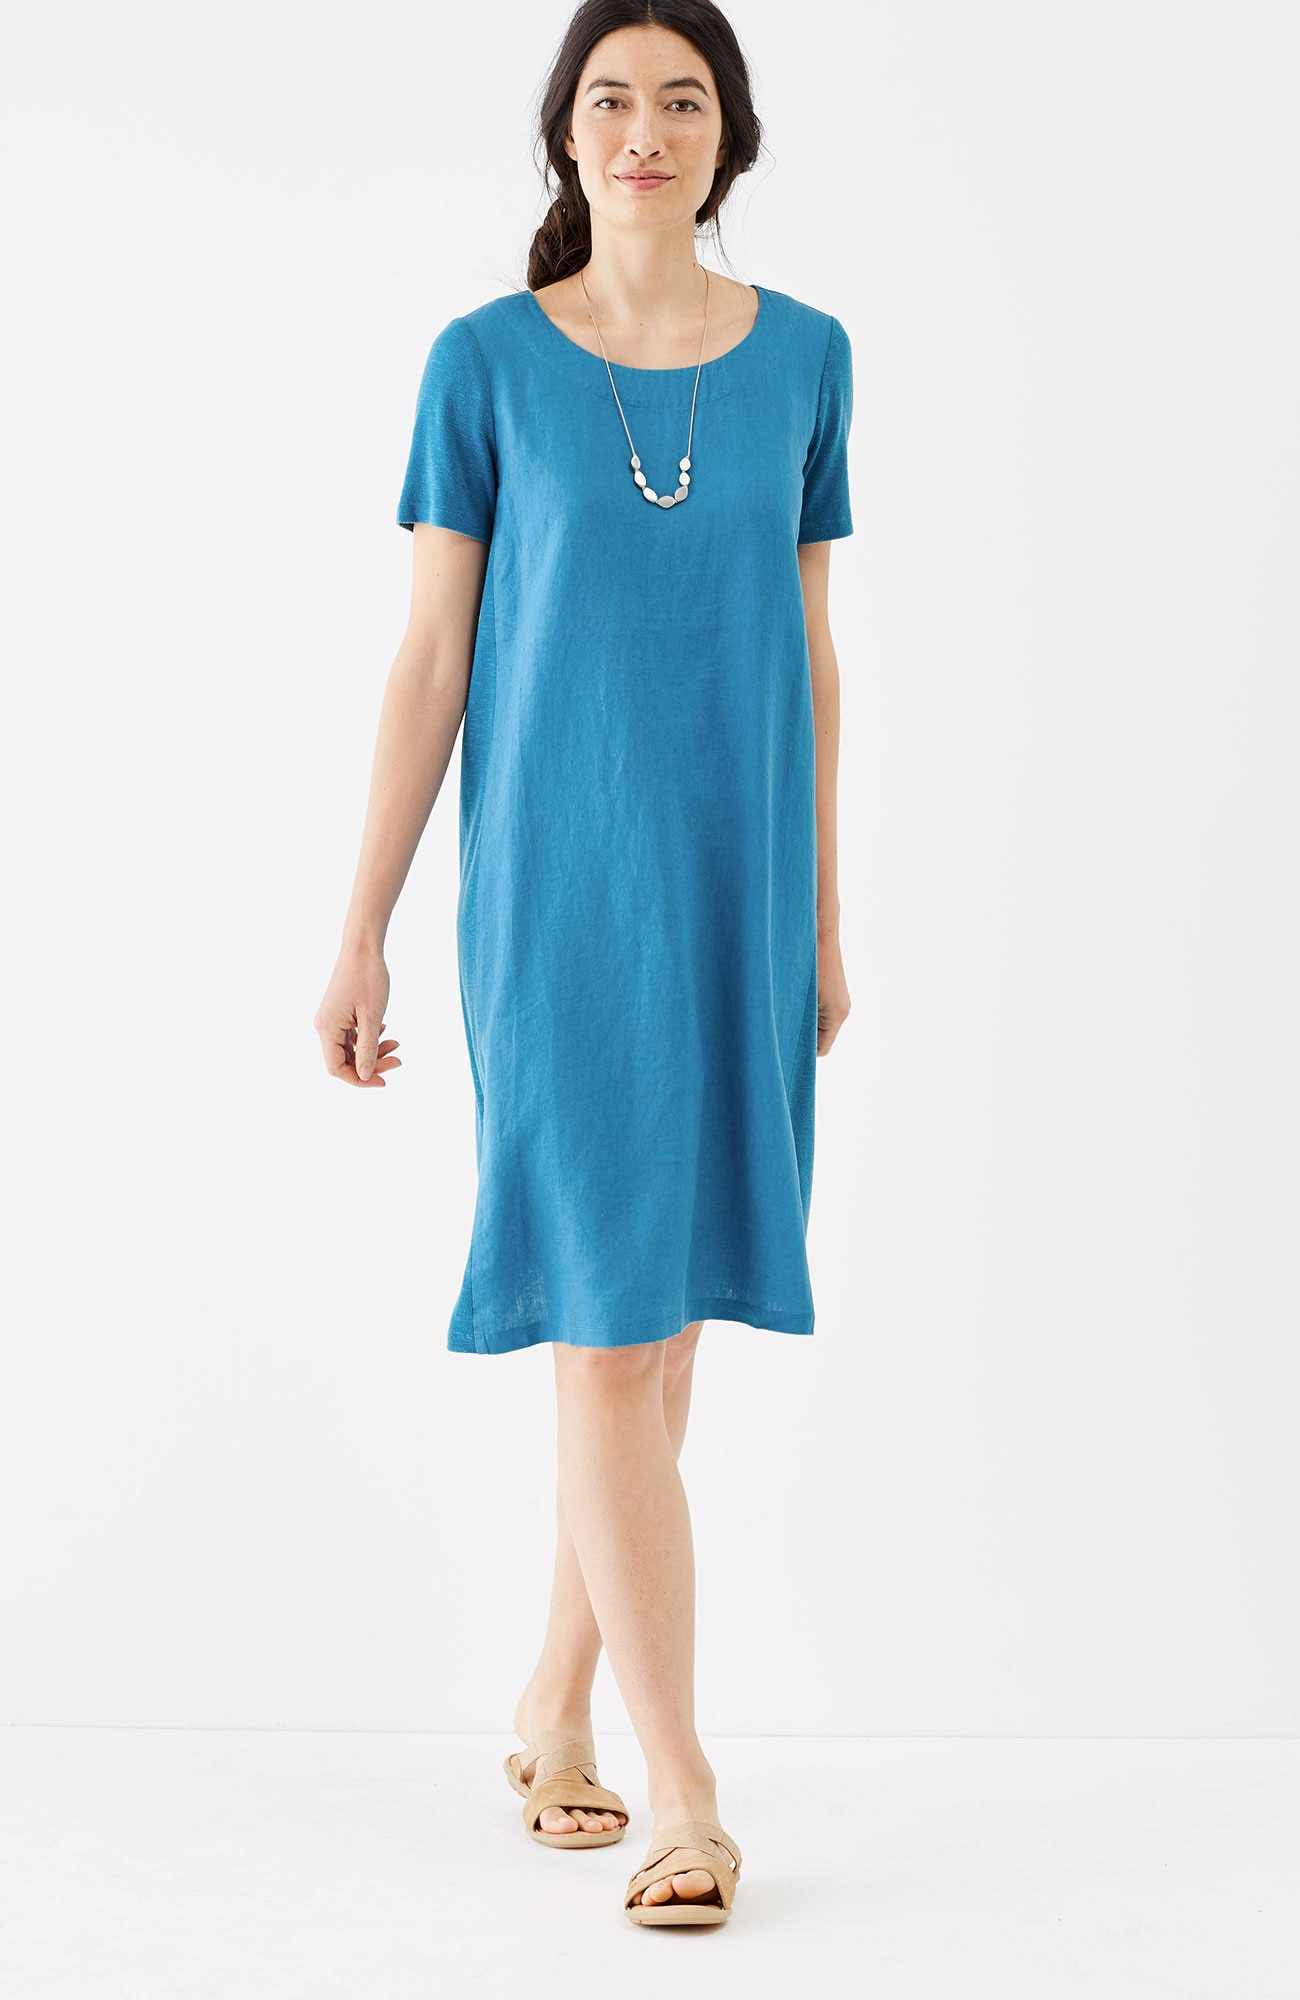 Pure Jill linen & Tencel® dress